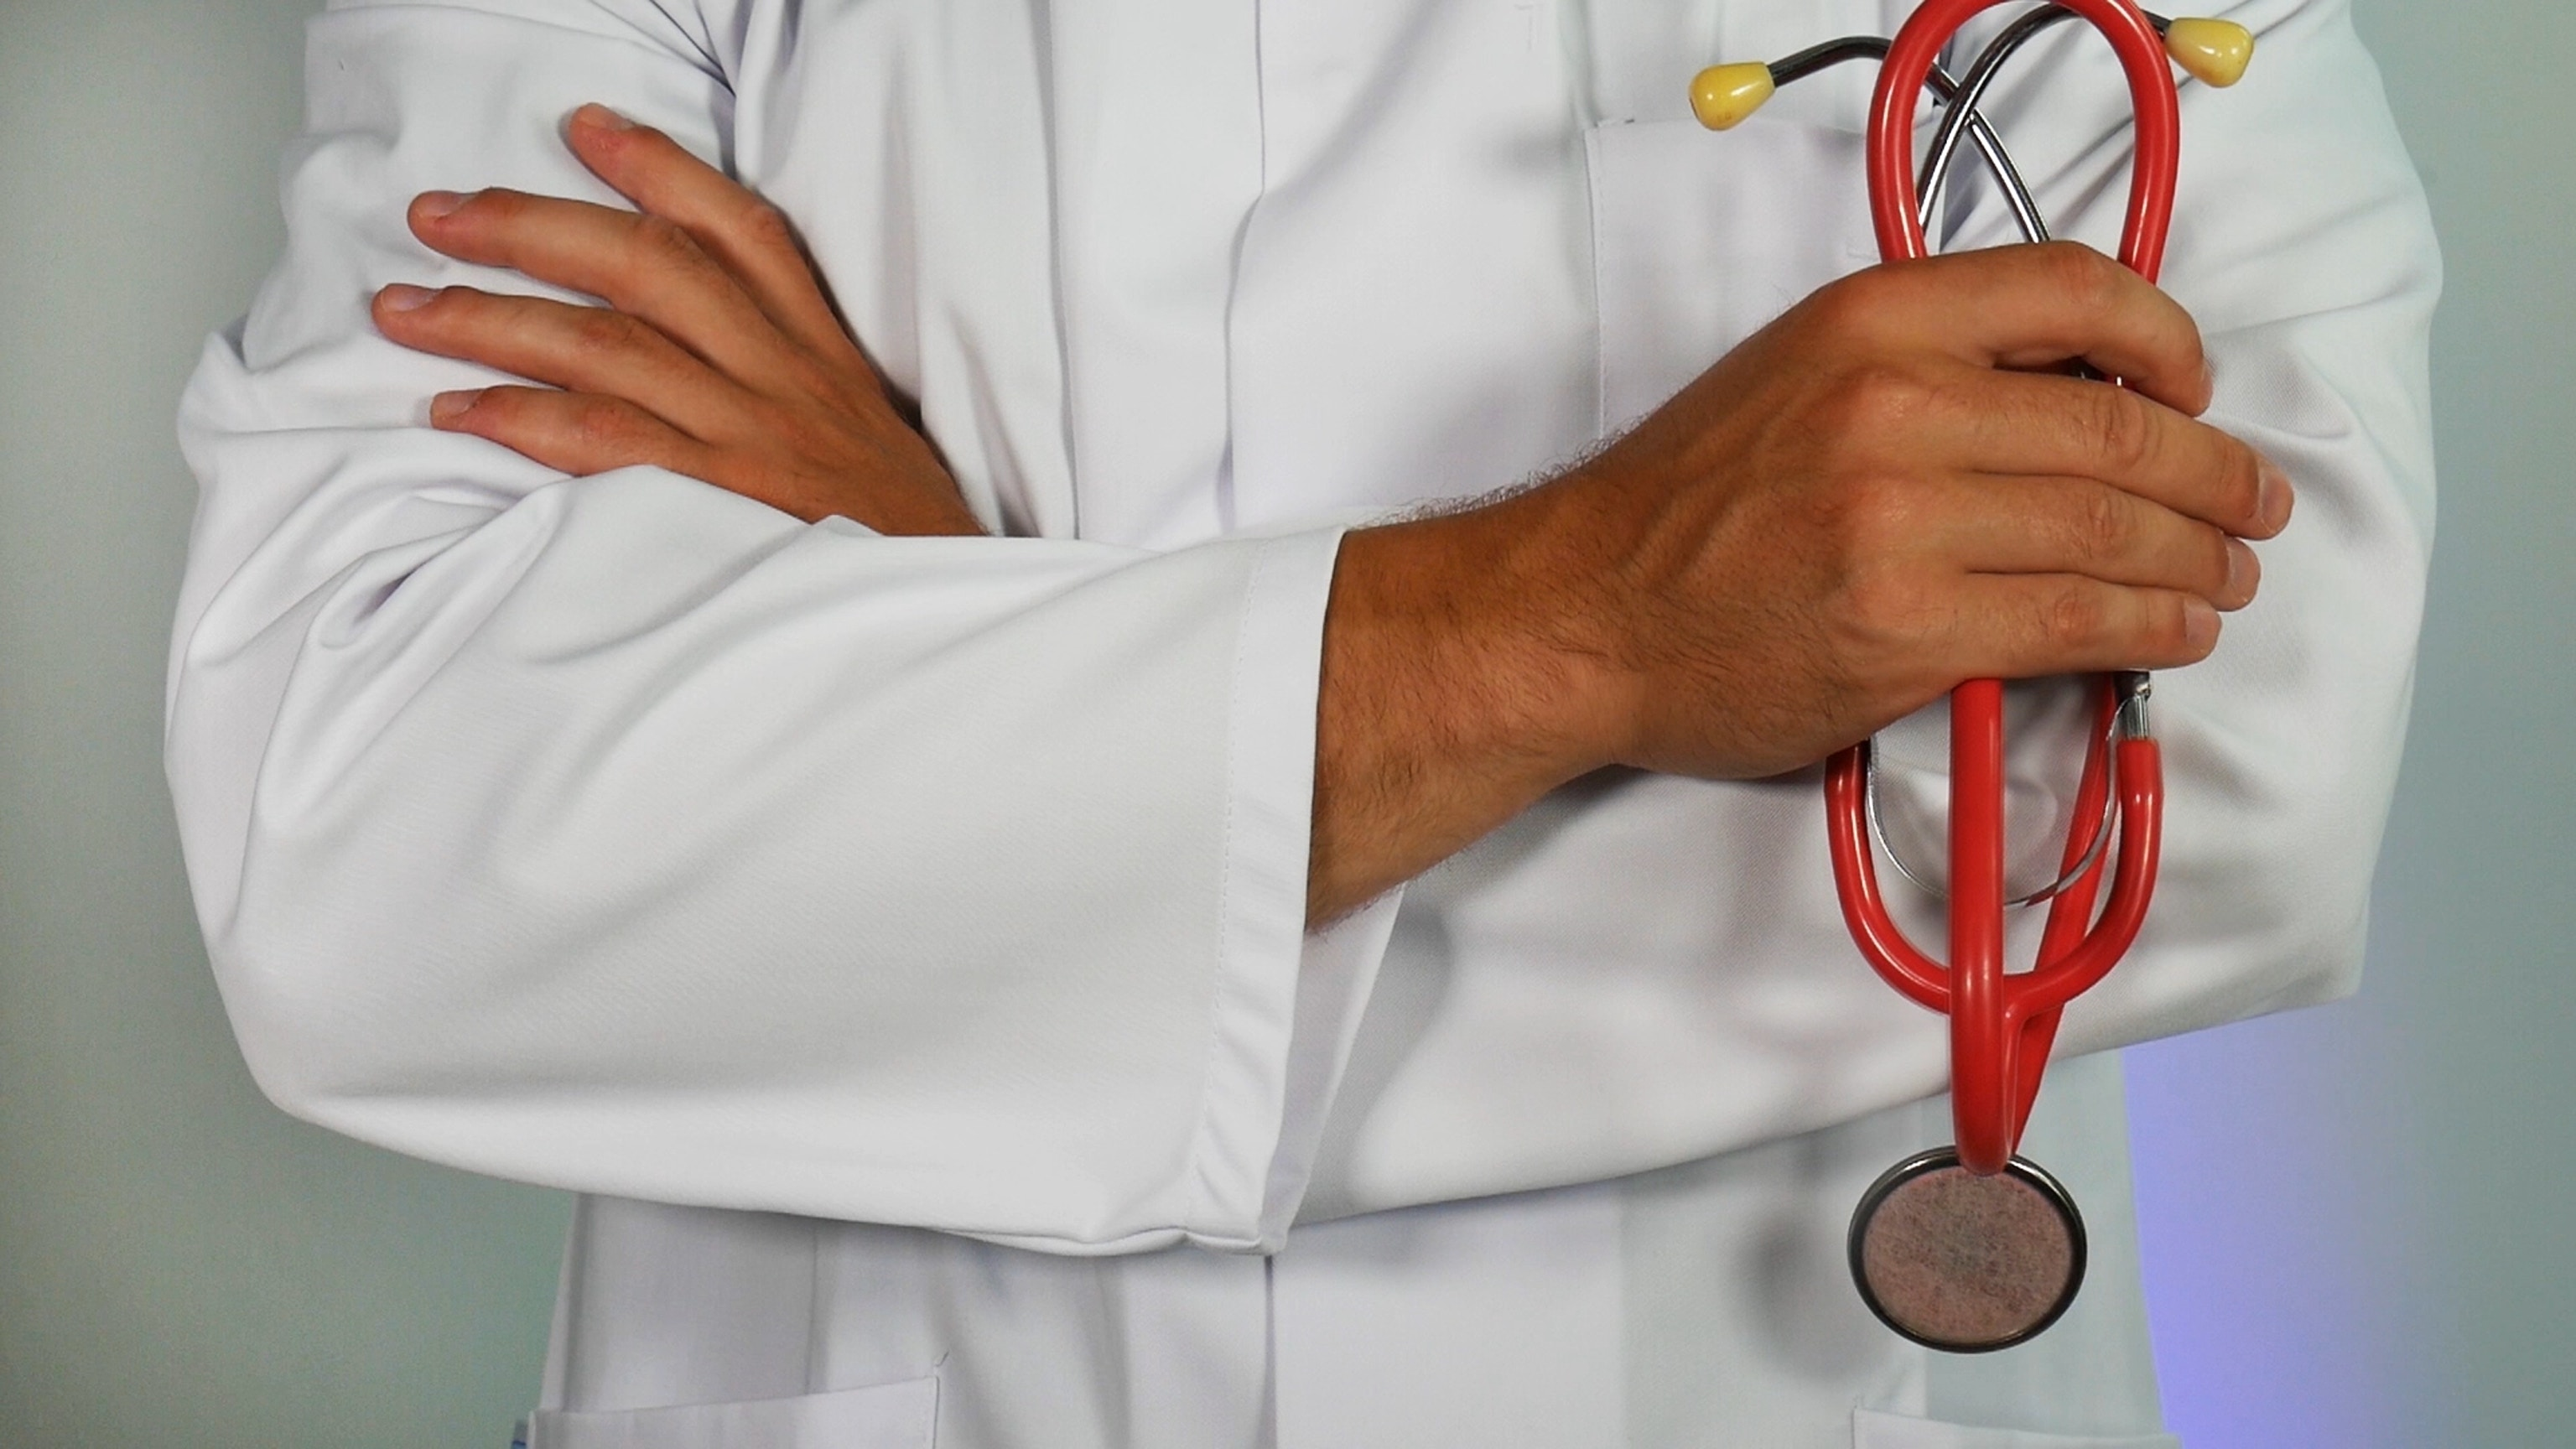 Discrimination Prevents LGBTQ People from Accessing Health Care